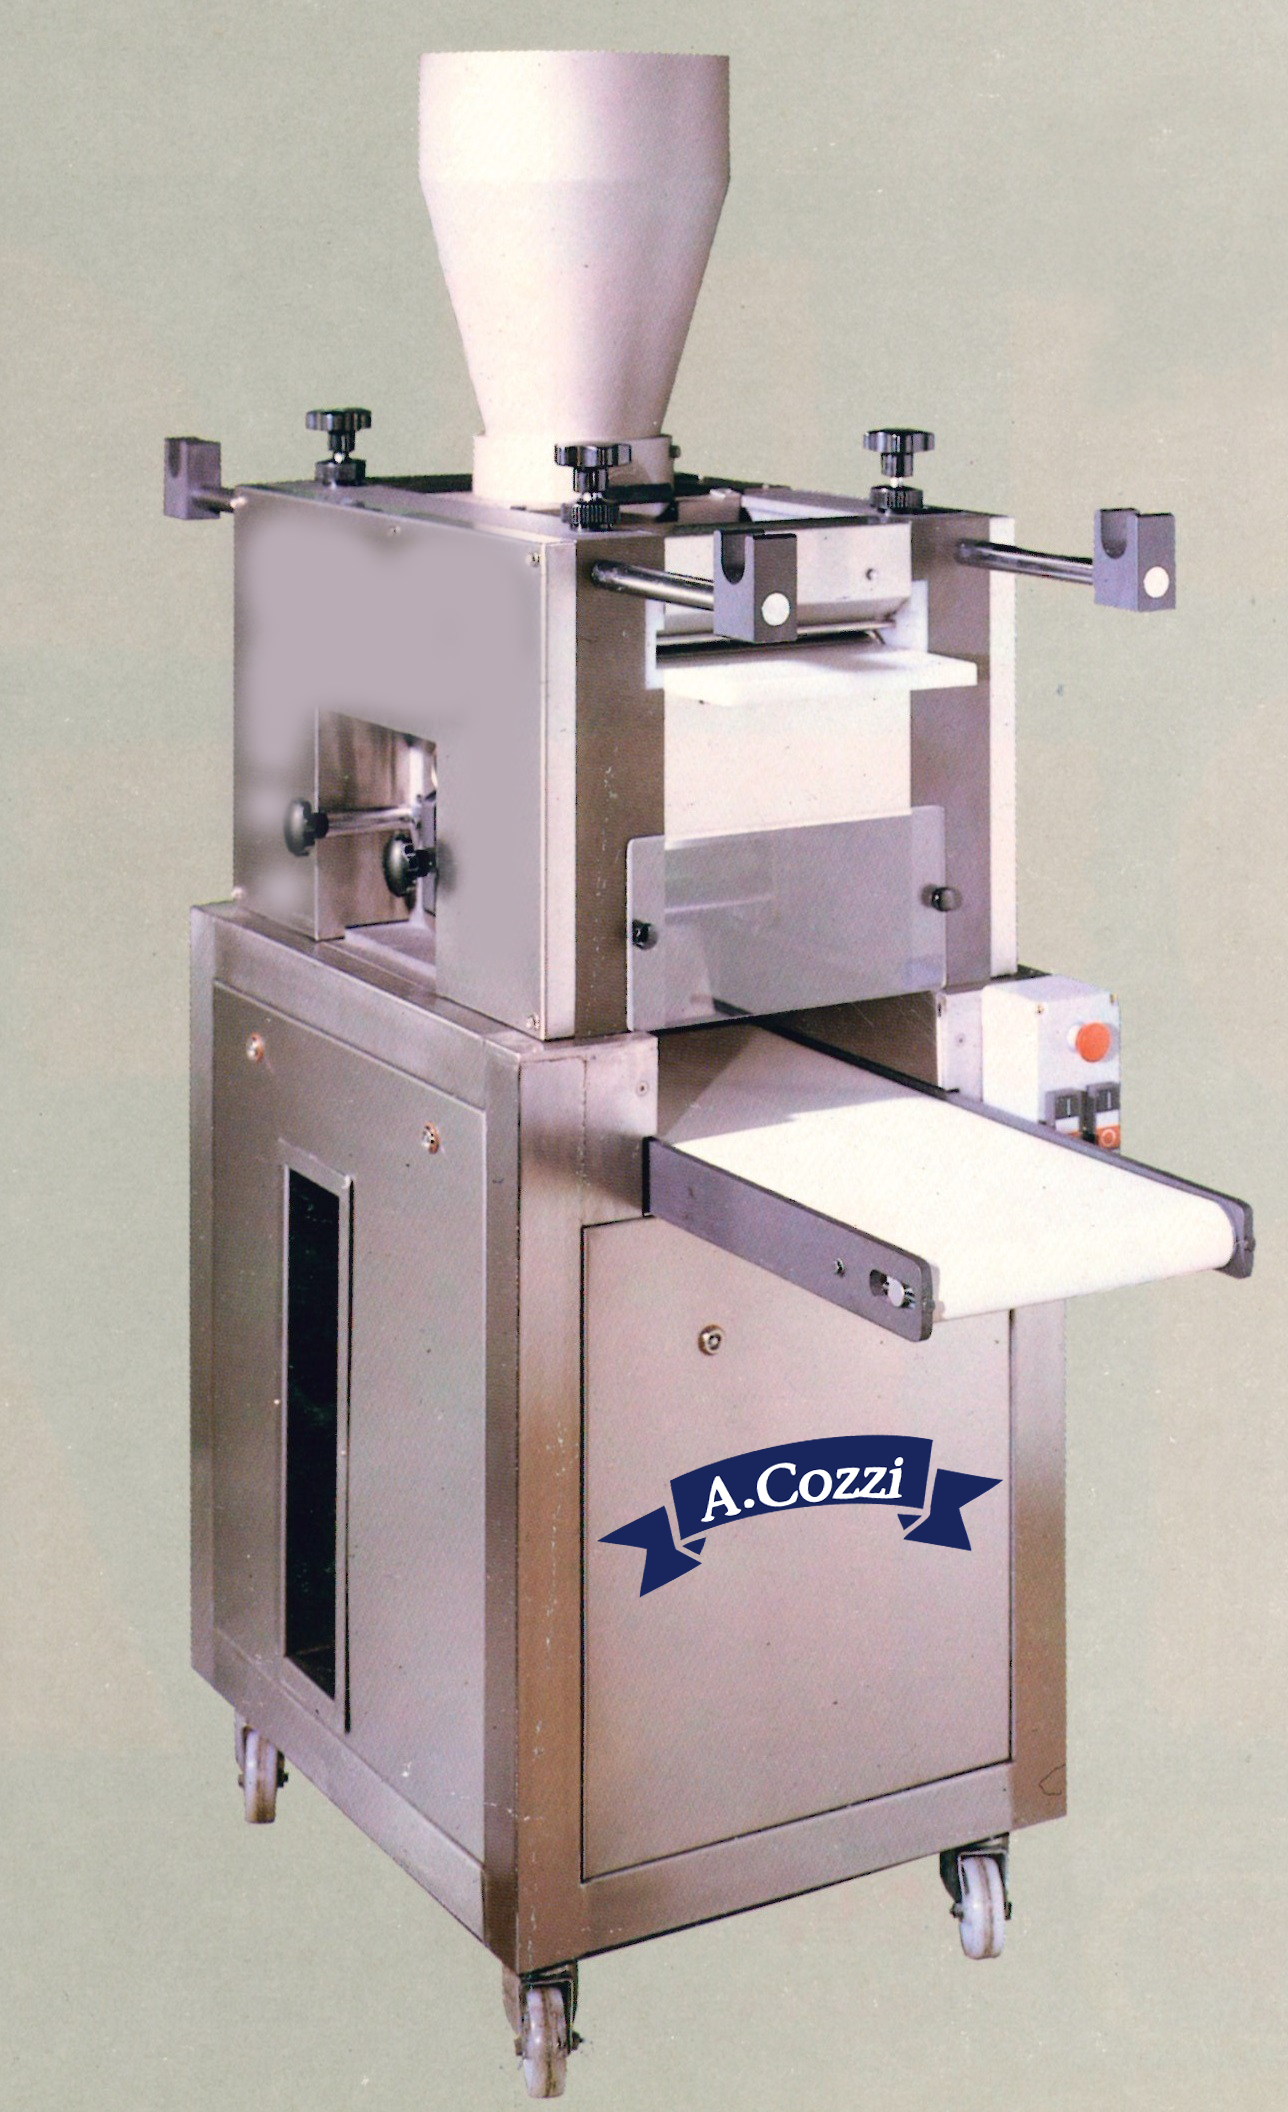 Machines for the production of RS250 ravioli